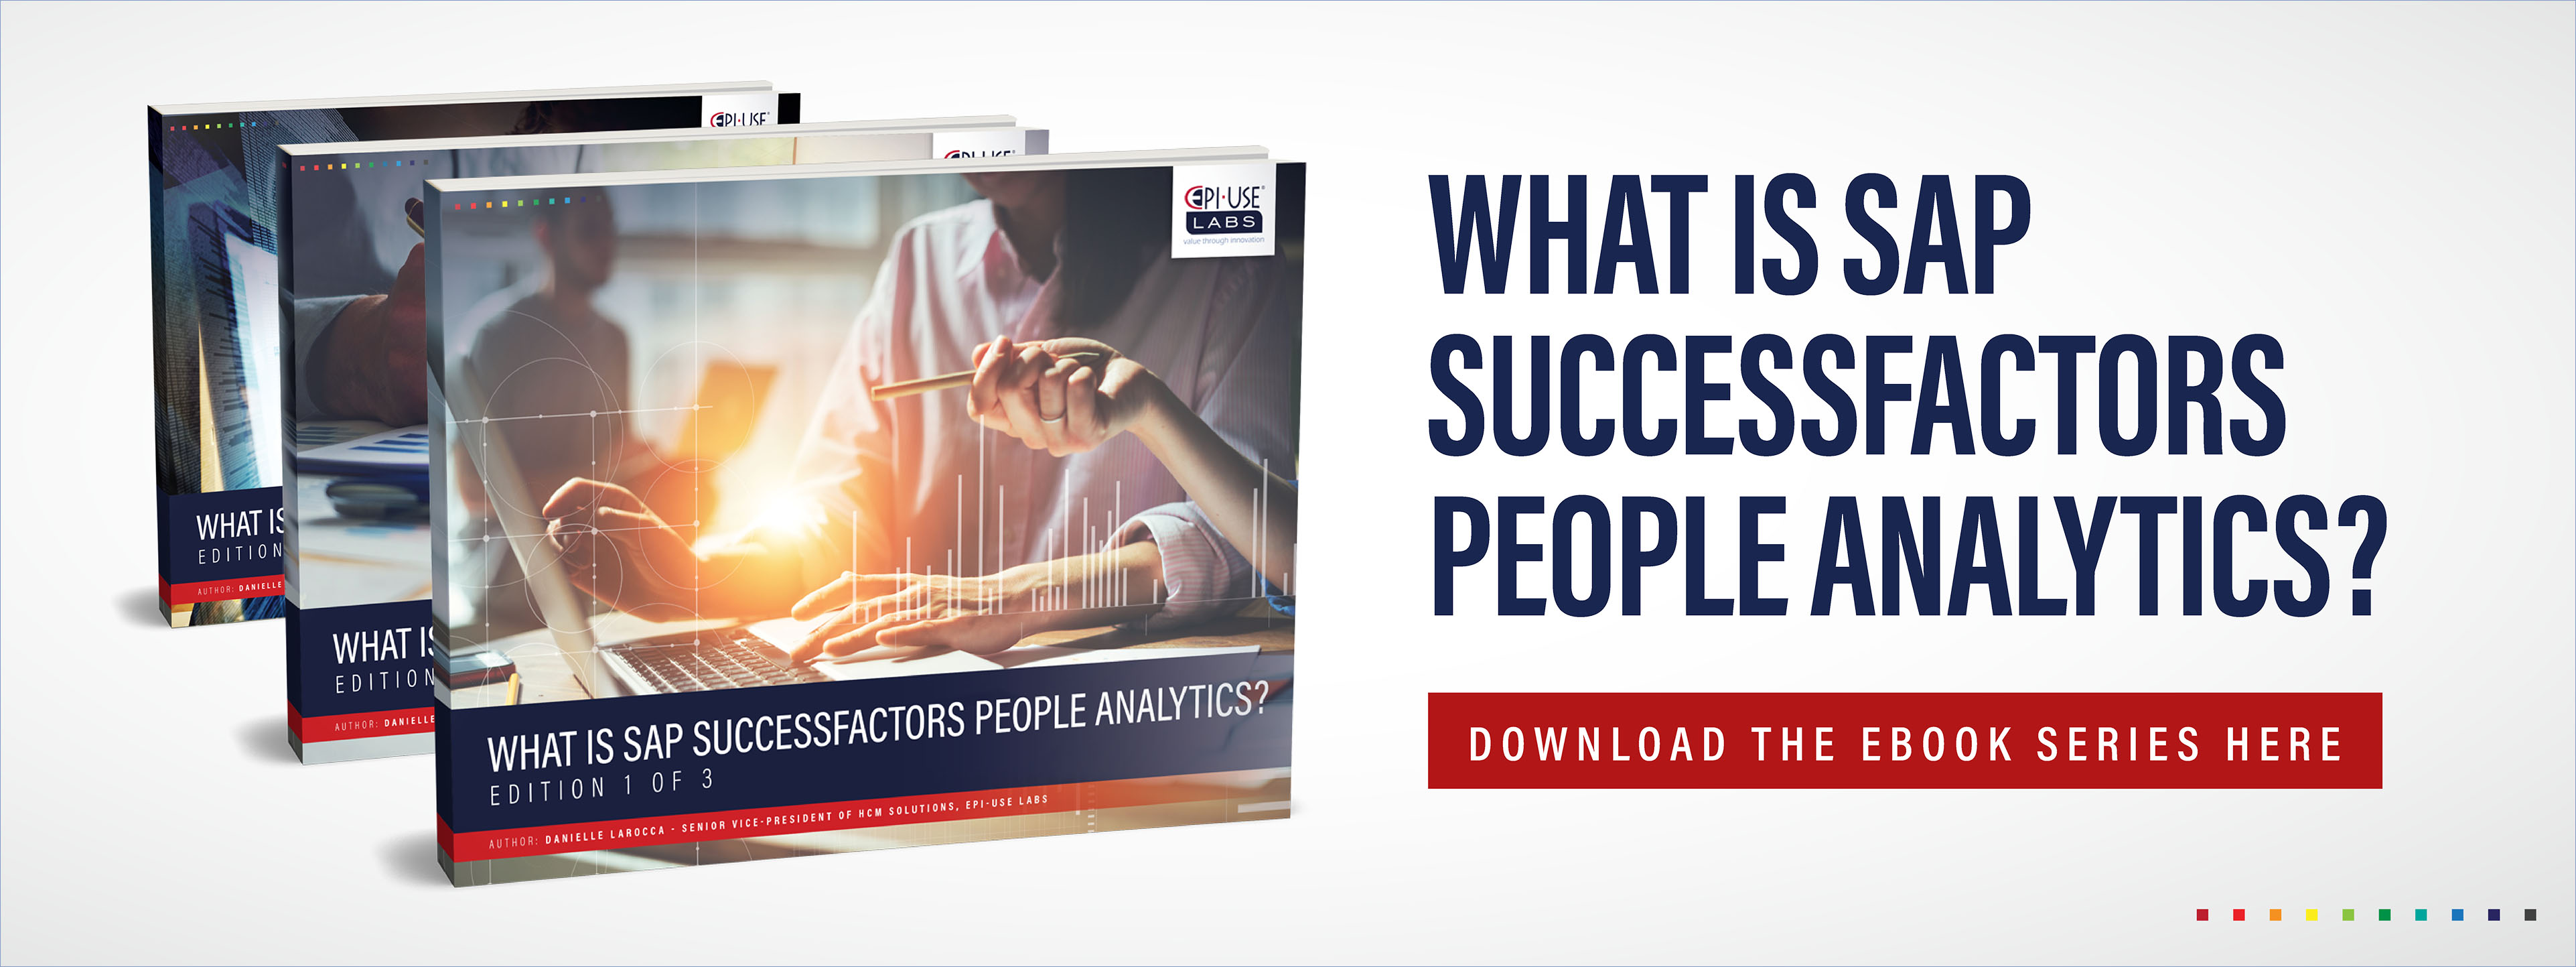 People Analytics EBook CTA_16 Oct